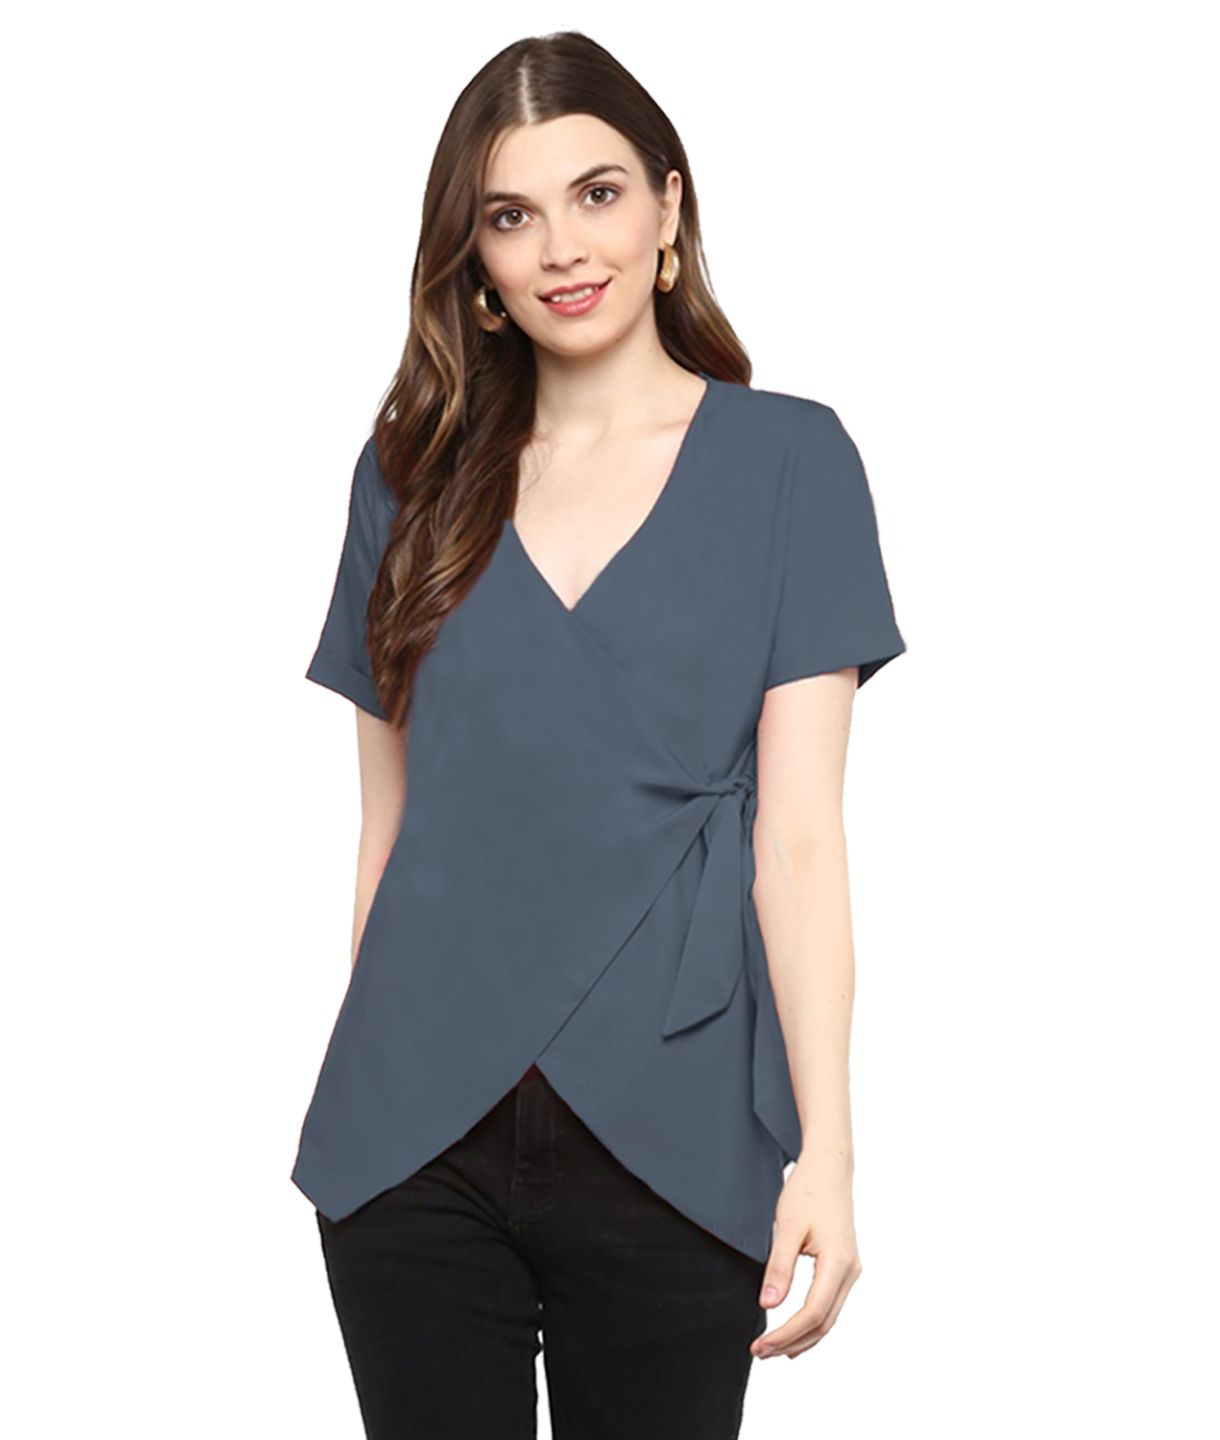 Uptownie Plus Solid Grey Wrap Top